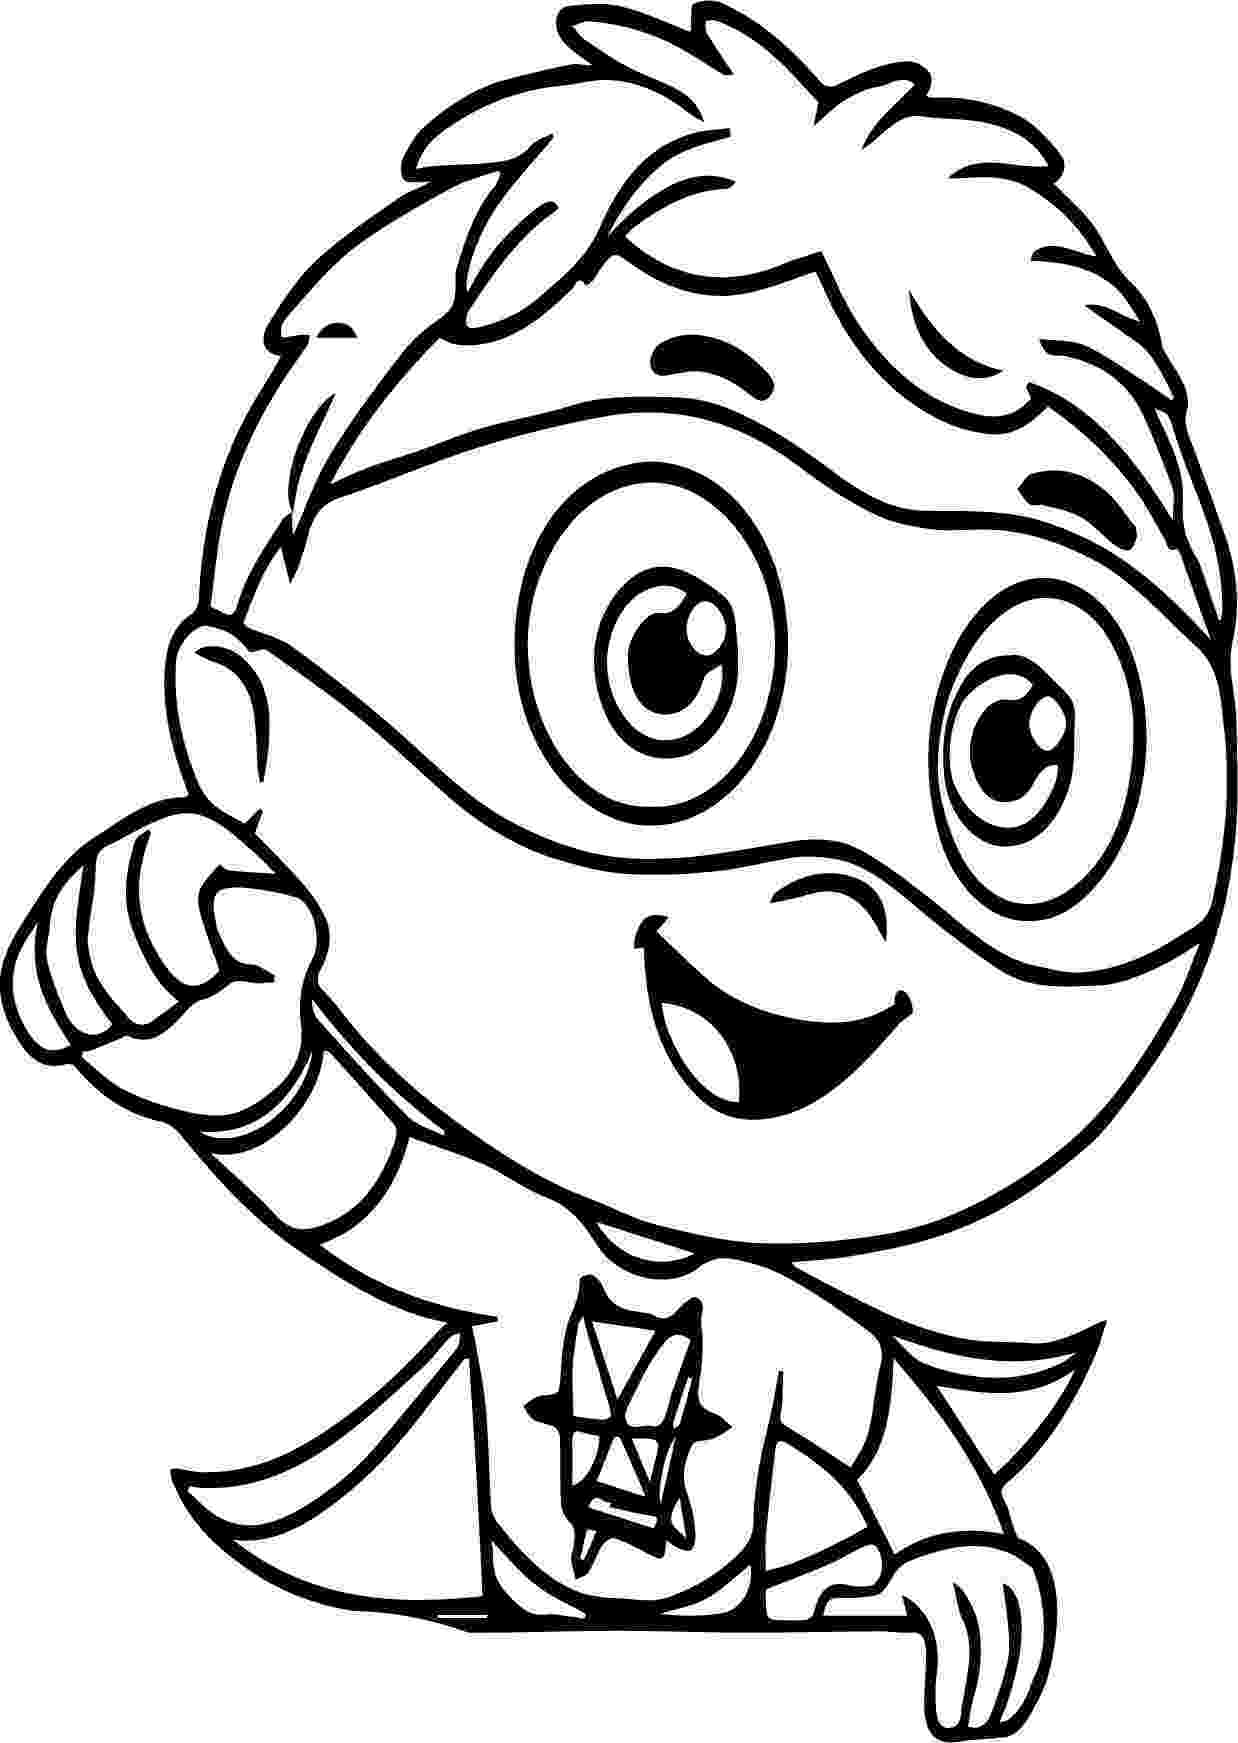 free coloring pages for children free printable elsa coloring pages for kids elsa for free pages coloring children